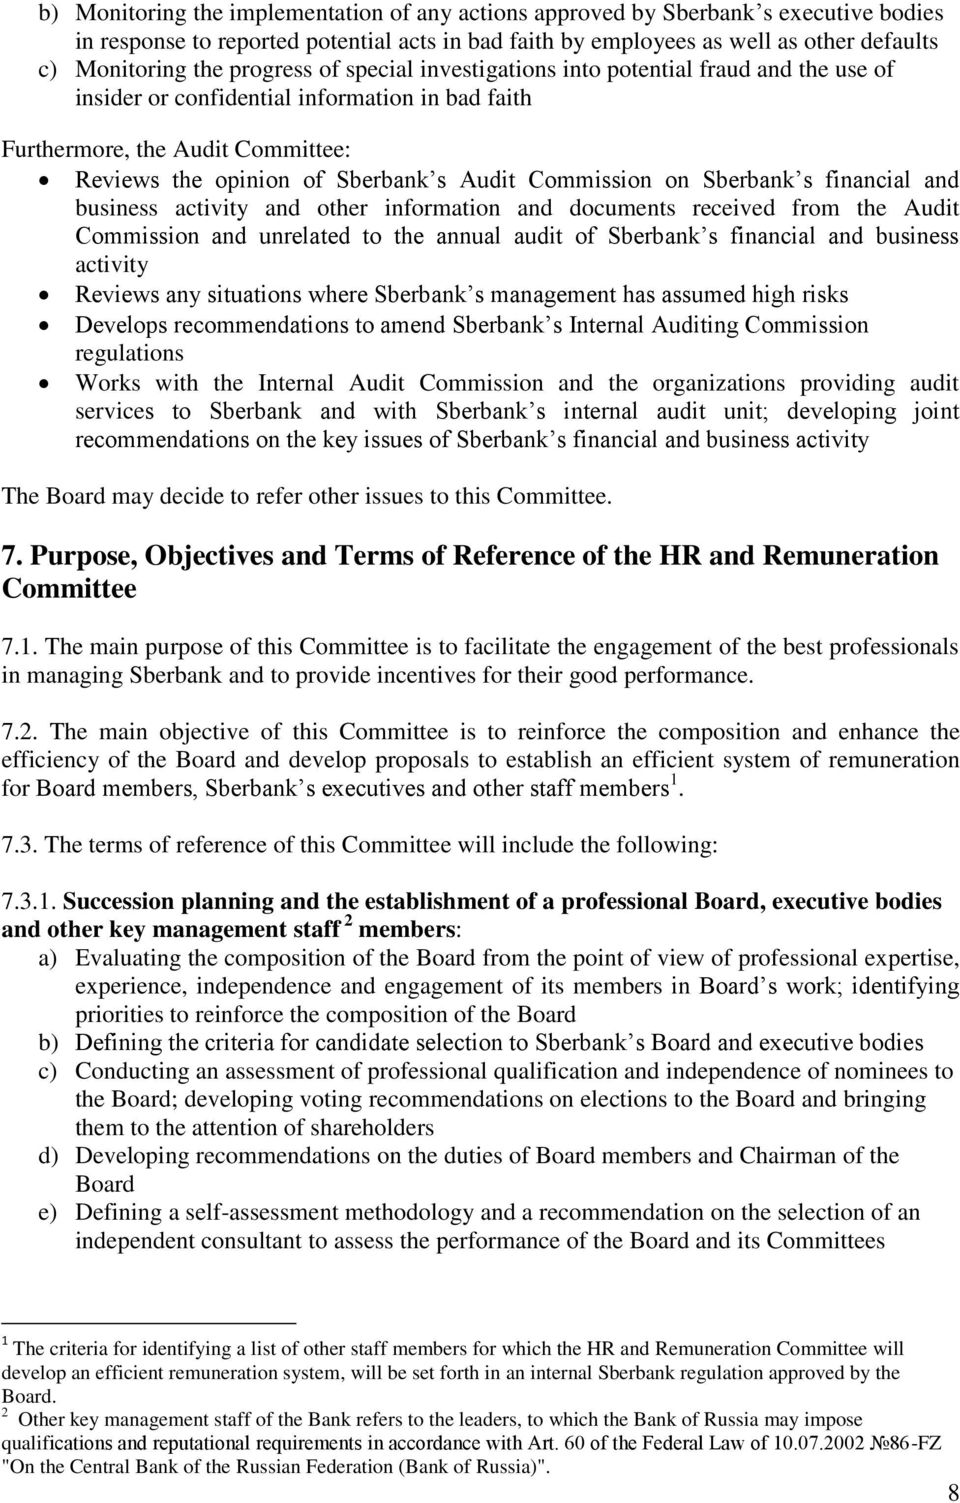 Commission on Sberbank s financial and business activity and other information and documents received from the Audit Commission and unrelated to the annual audit of Sberbank s financial and business